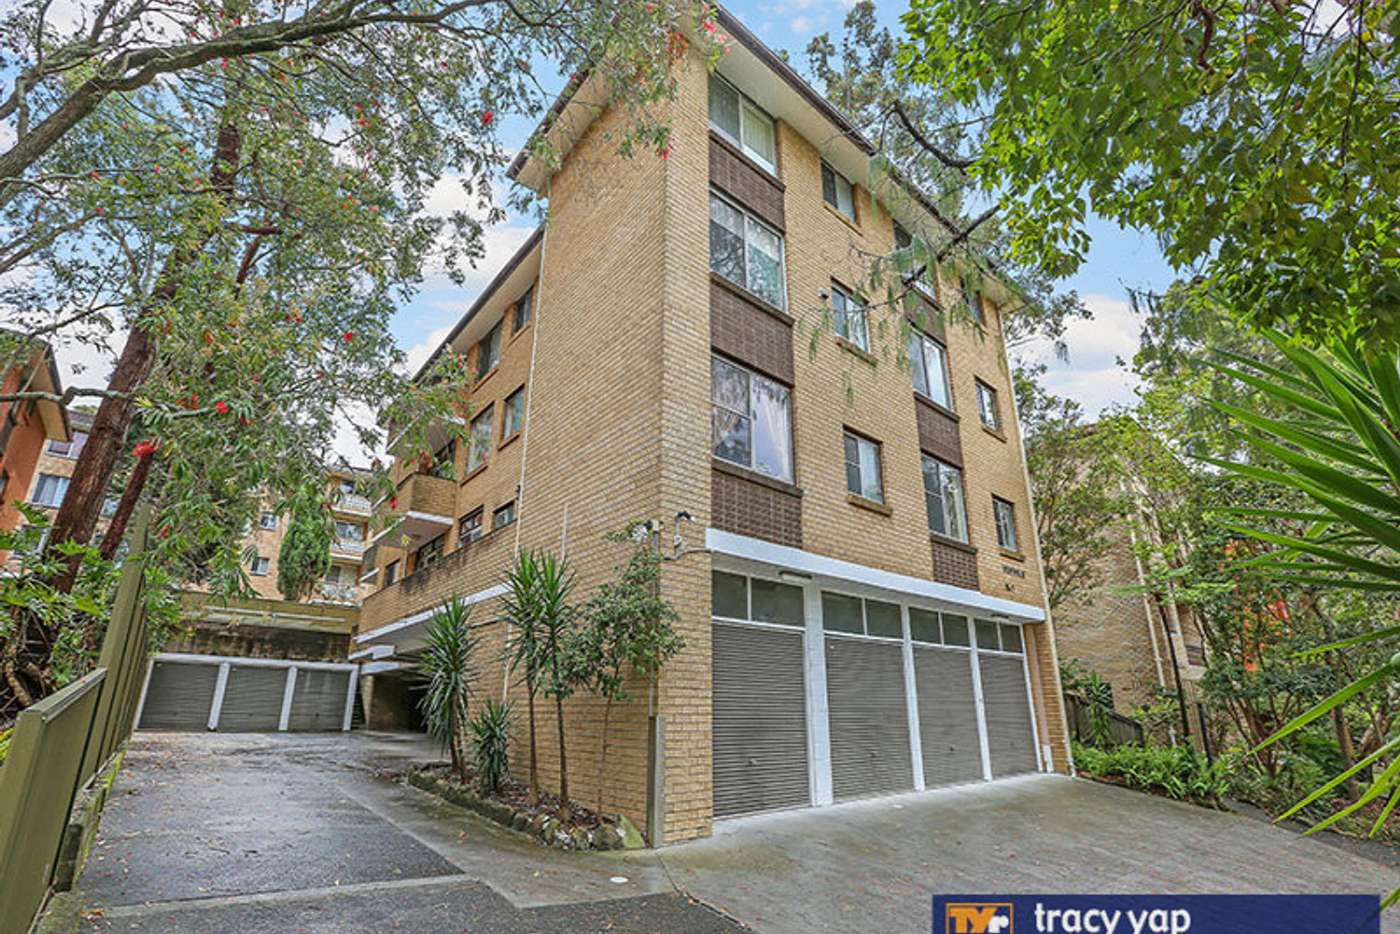 Main view of Homely unit listing, 3/7 Cottonwood Crescent, Macquarie Park NSW 2113